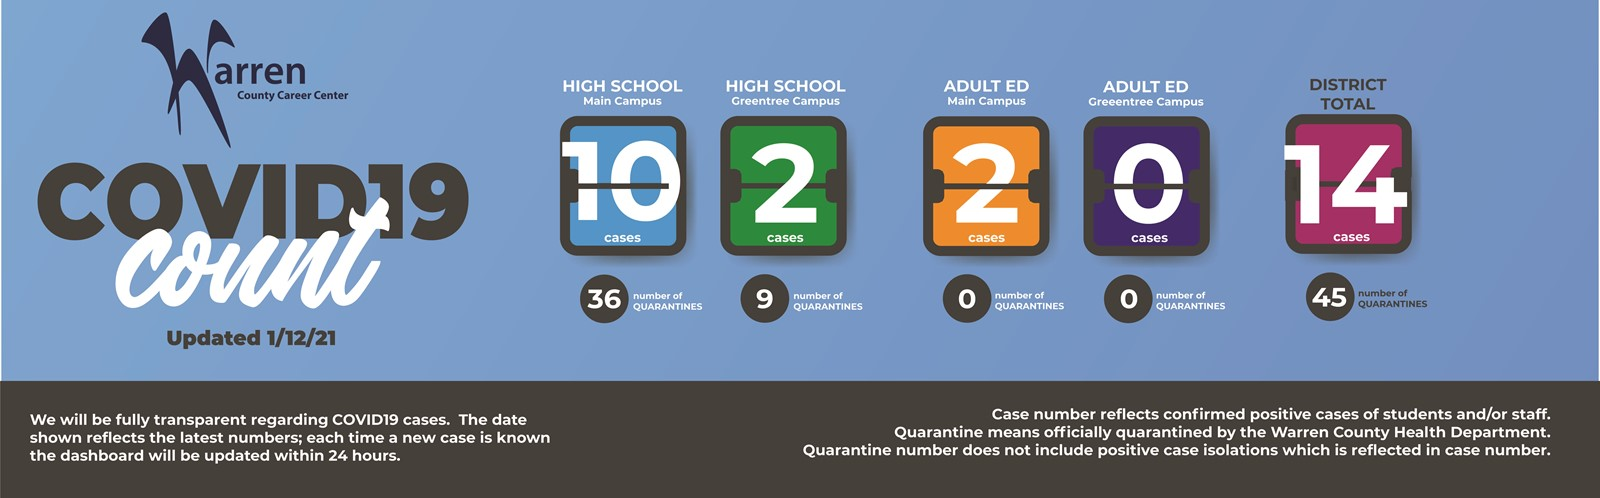 Covid dashboard 14 total cases. 45 total quarantined